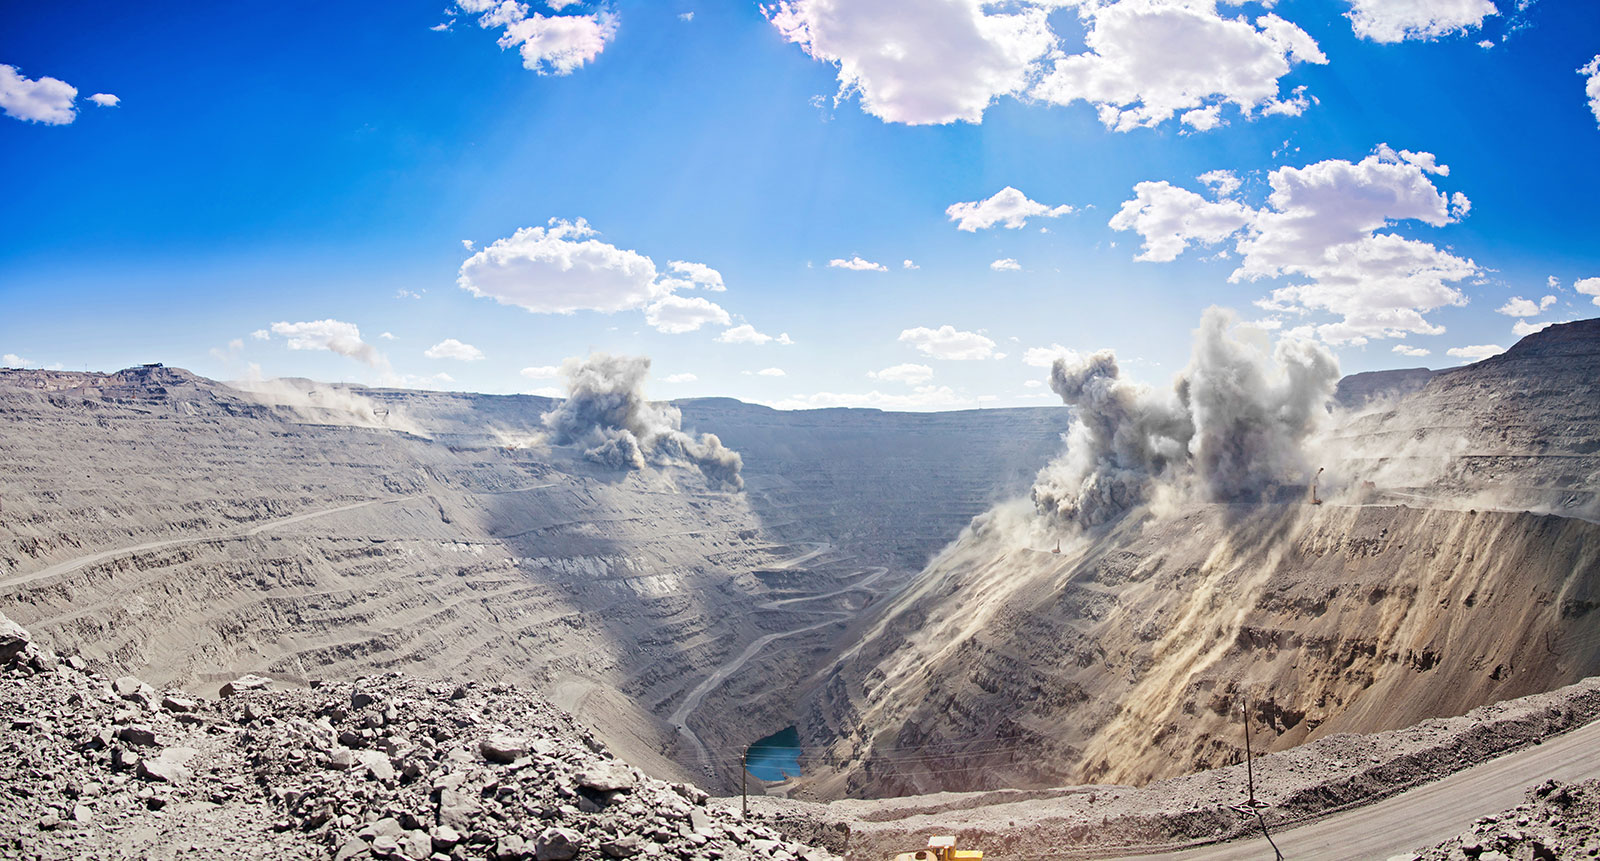 New monitoring system poised to raise mining revenue